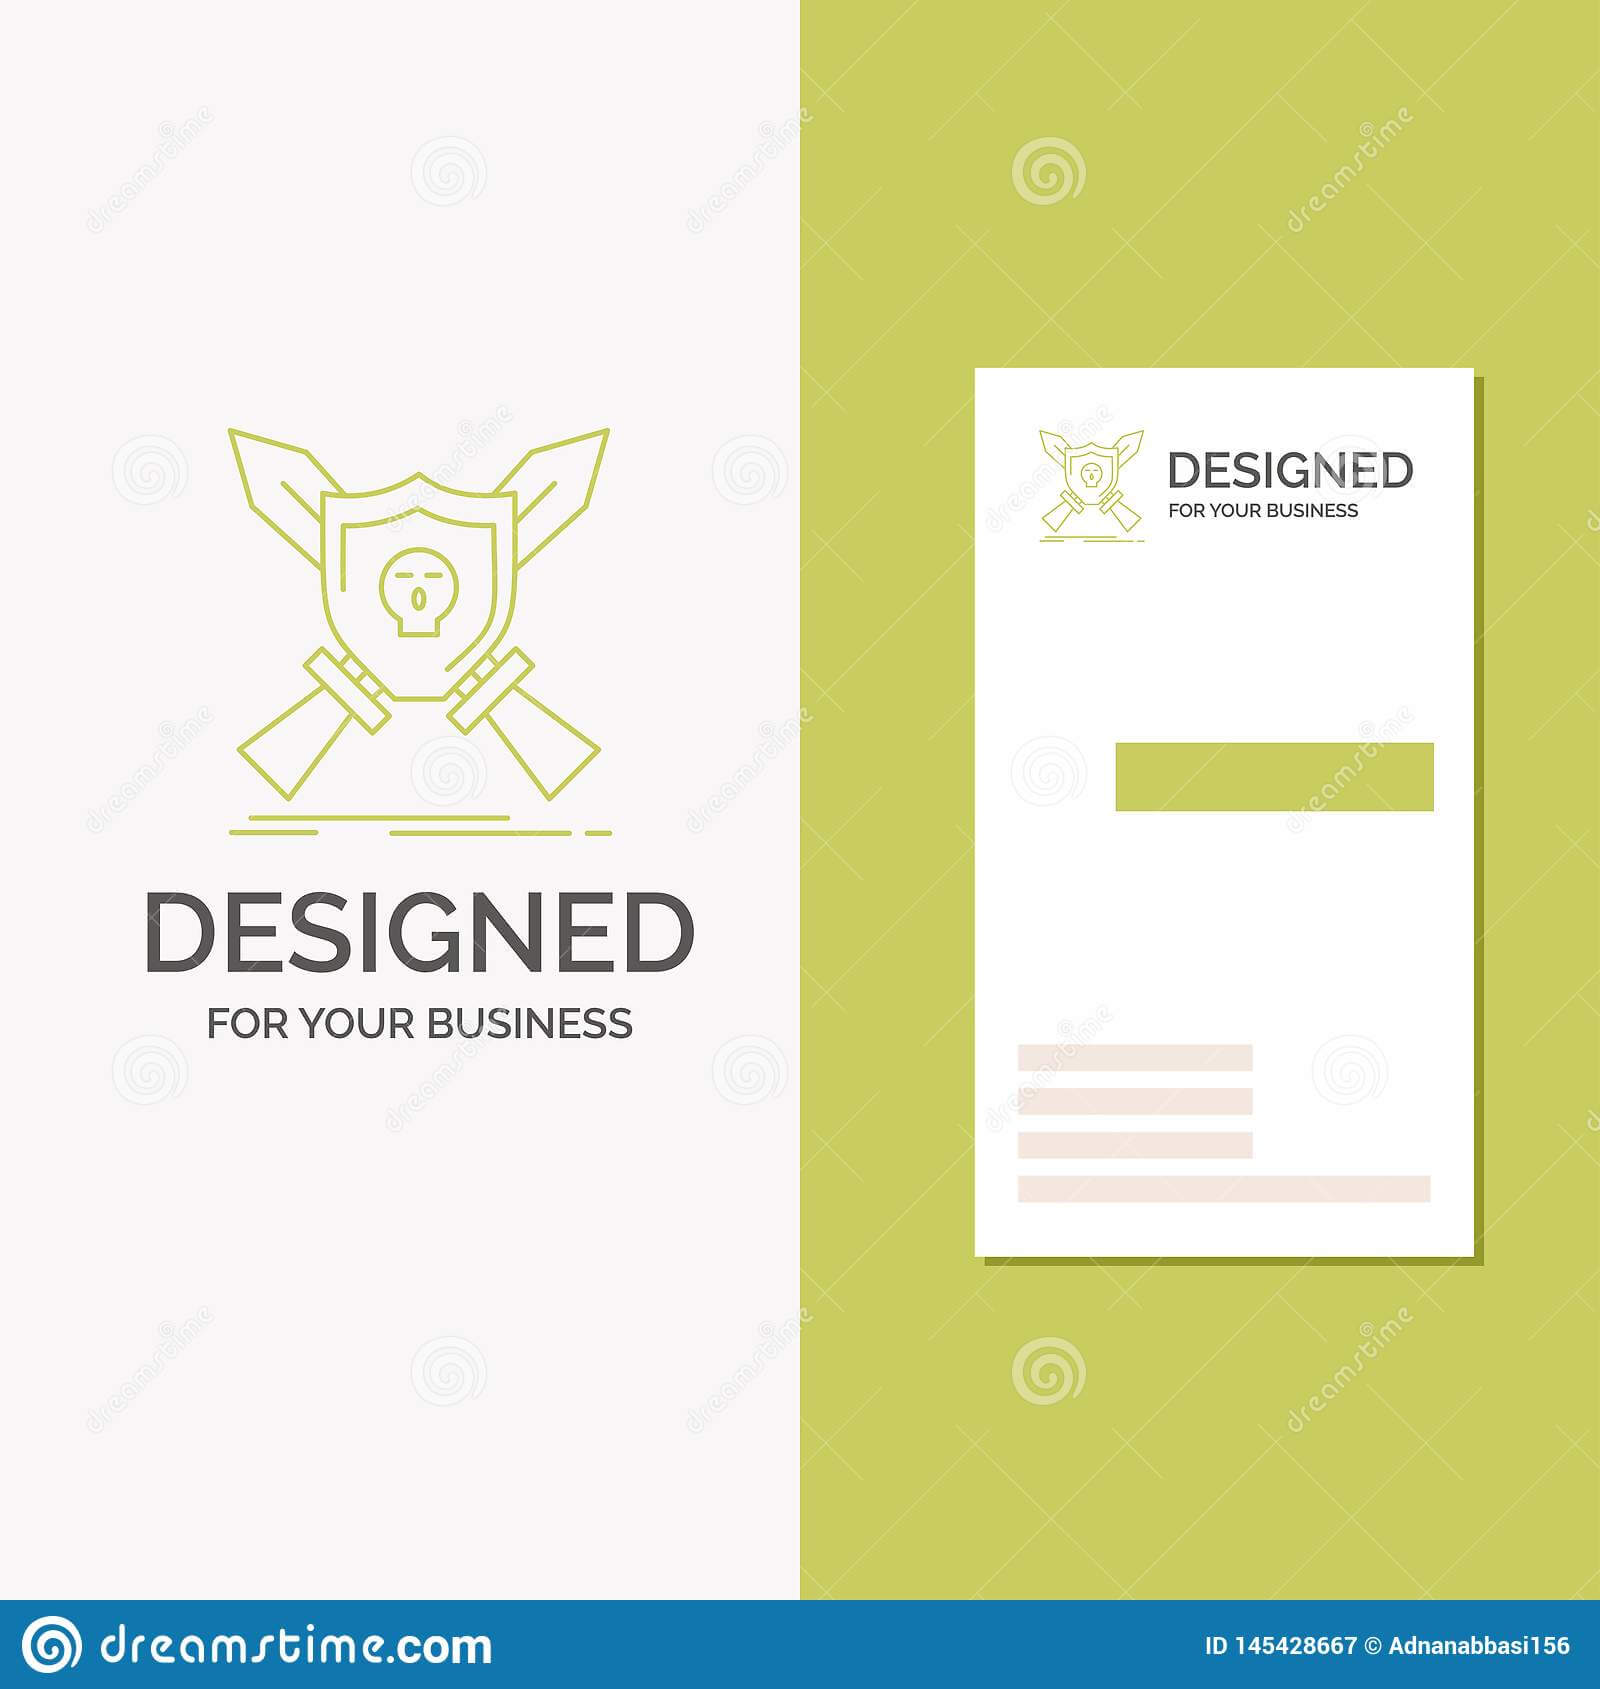 Business Logo For Badge, Emblem, Game, Shield, Swords intended for Shield Id Card Template